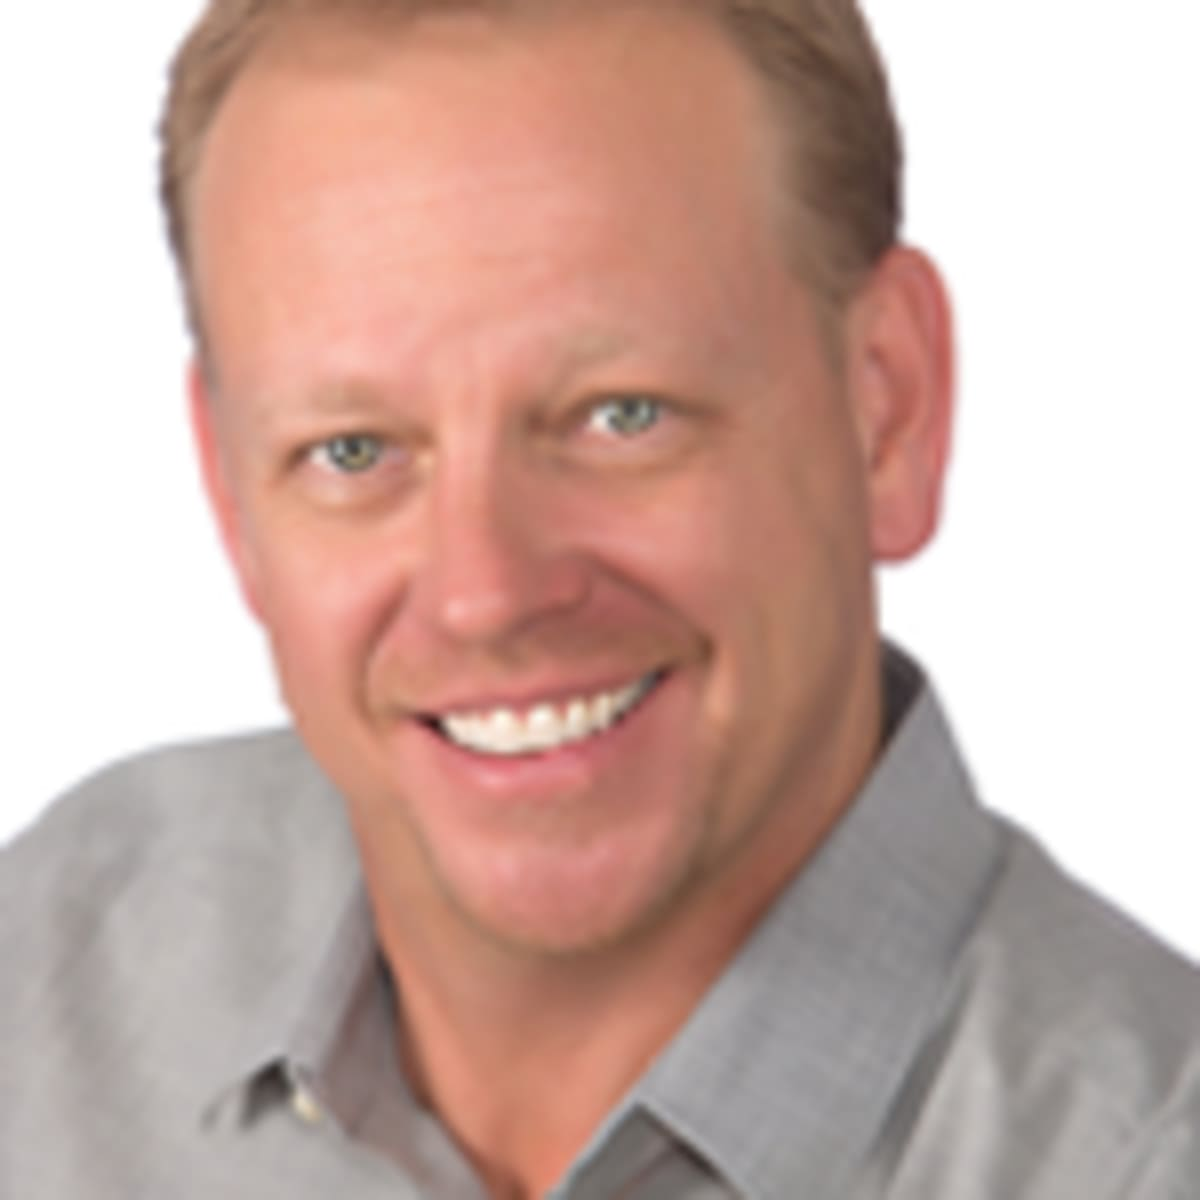 Dr. Philip Wimpee, DDS